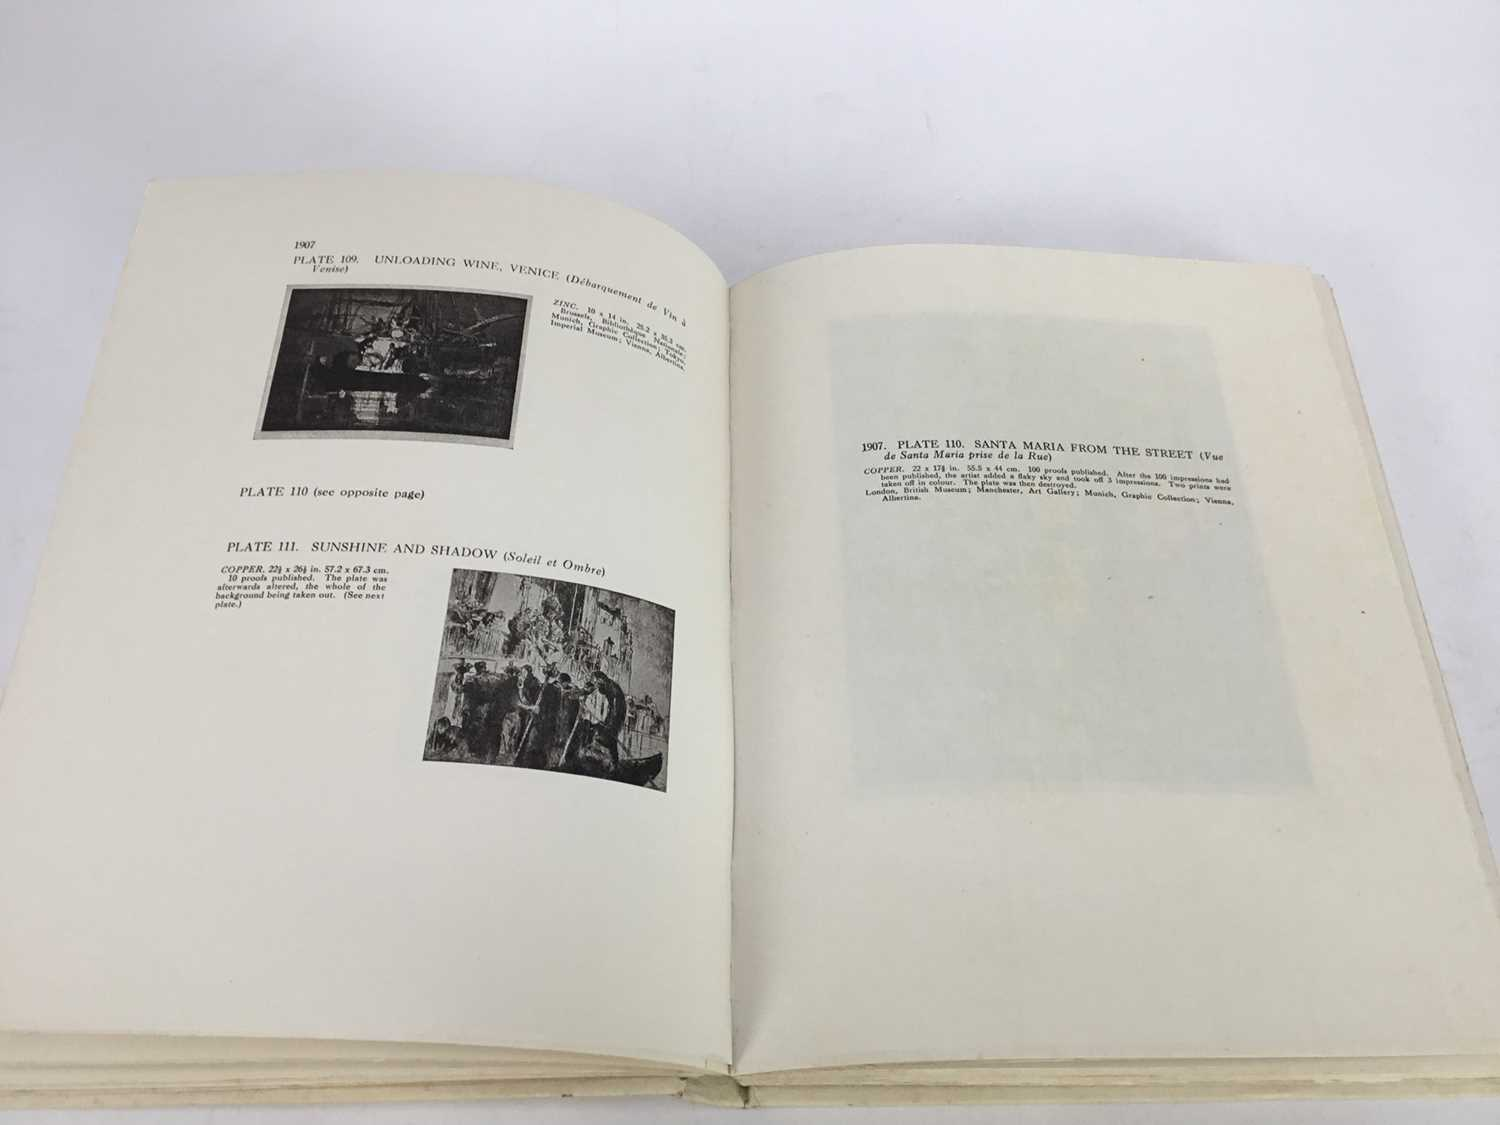 Book - The Etchings of Frank Brangwyn, R.A. A Catalogue Raisonne By W. Gaunt, limited edition 10/125 - Image 7 of 8